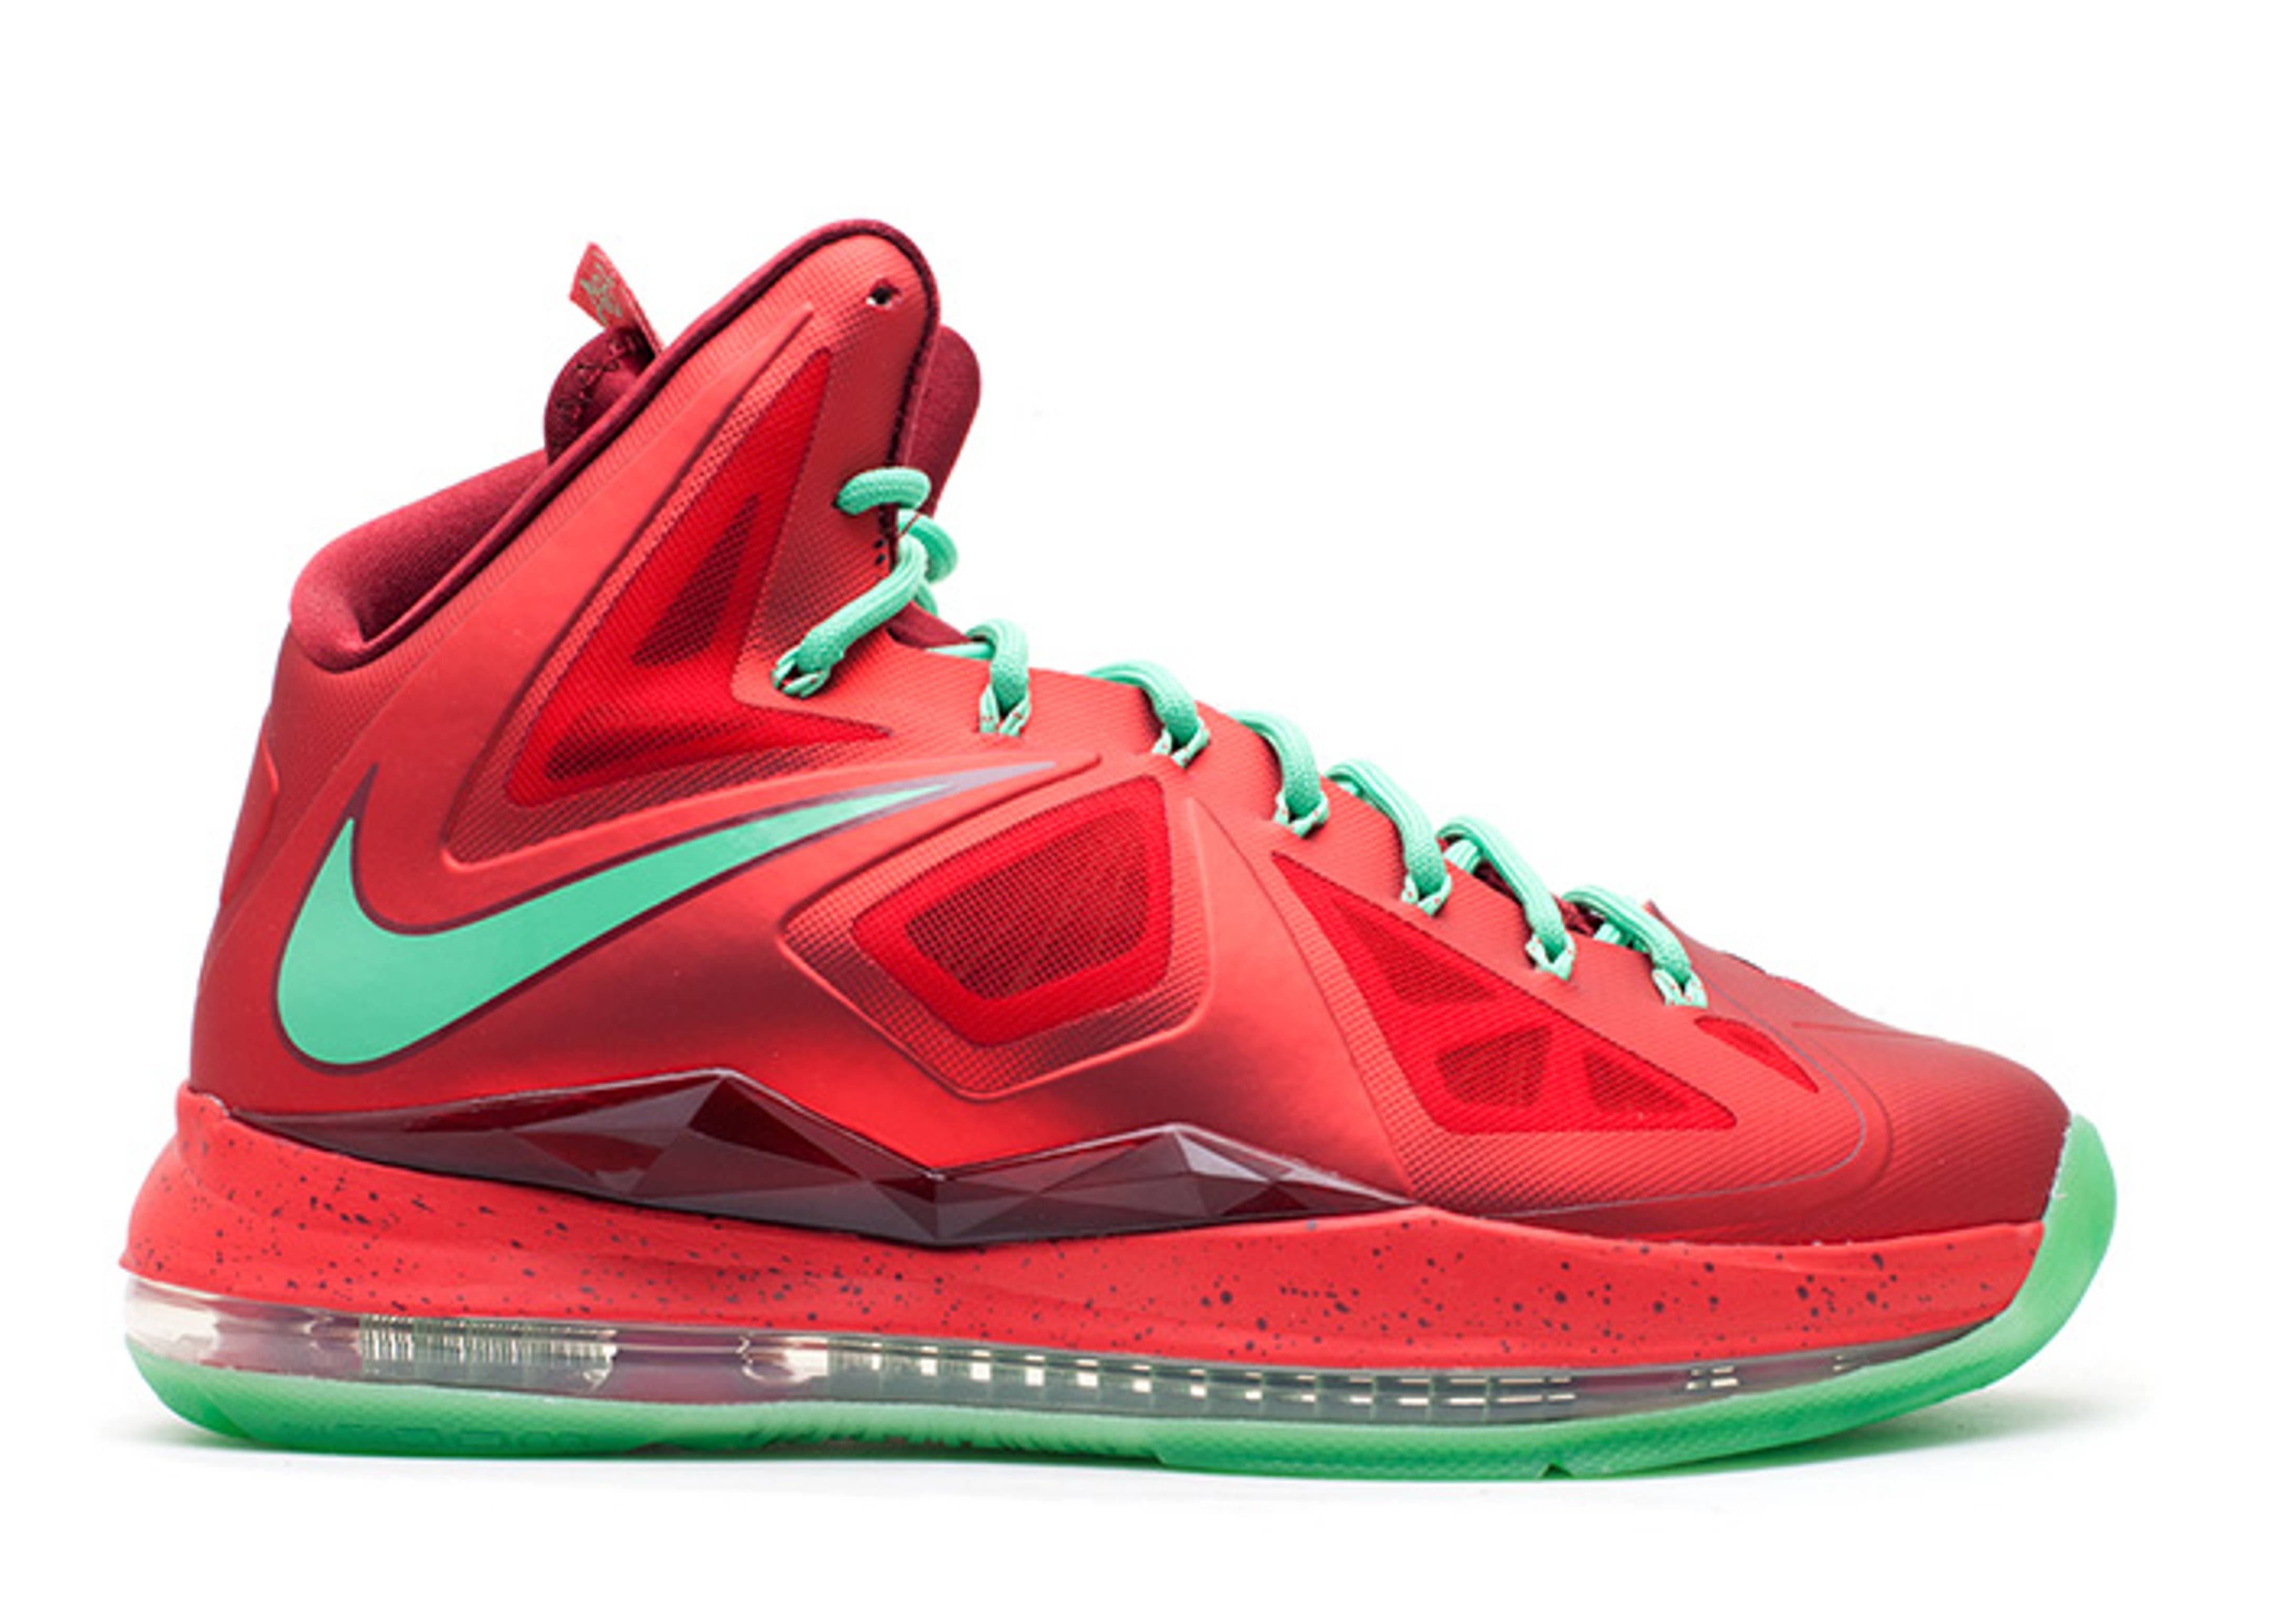 new arrival a8ee5 439d4 Lebron 10